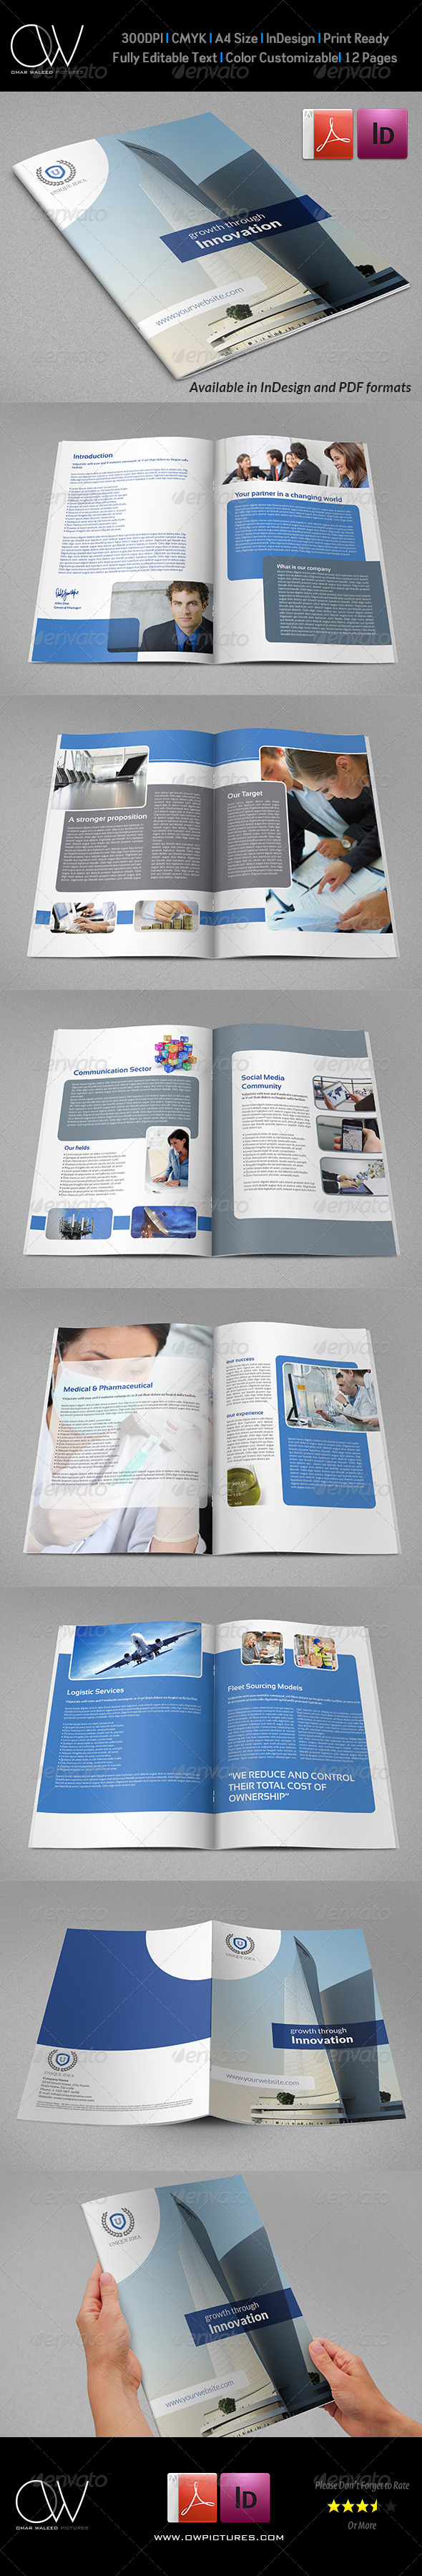 Company Brochure Template Vol.31 - 12 Pages - Corporate Brochures